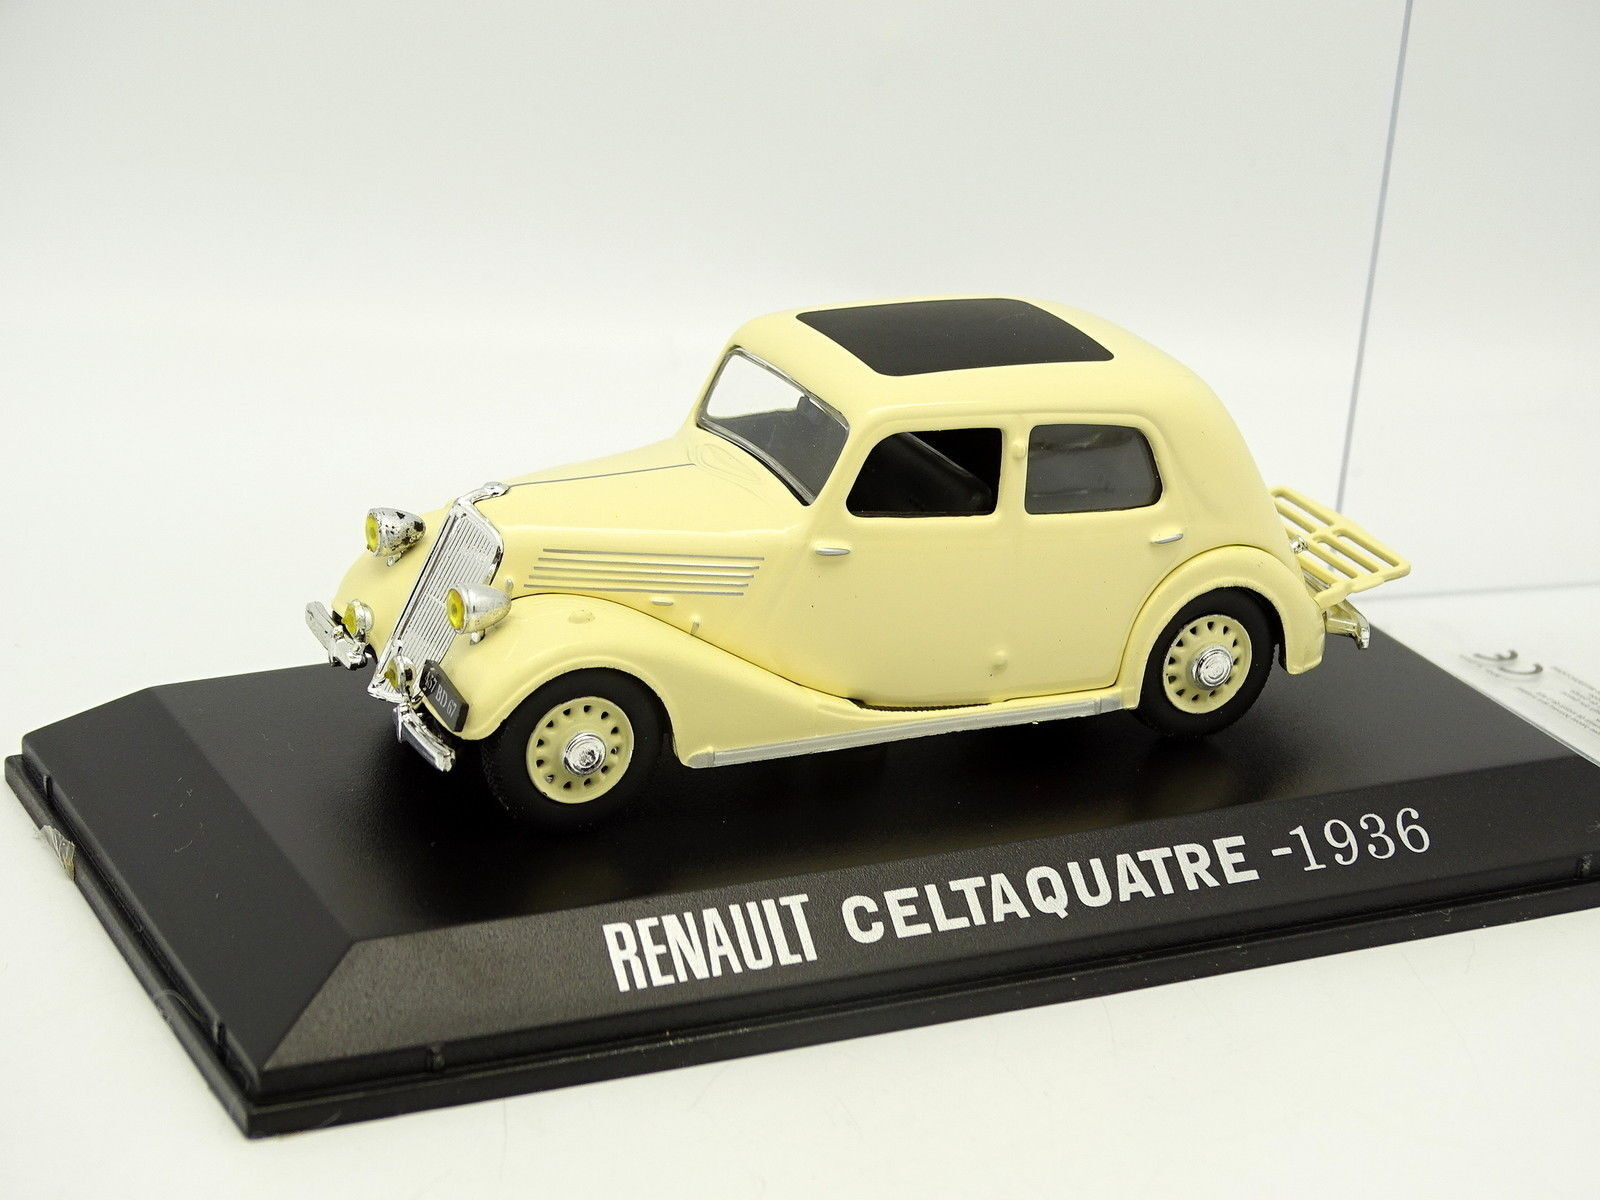 Norev Norev Norev Press 1 43 - Renault Celtaquatre 1936 72a8a7